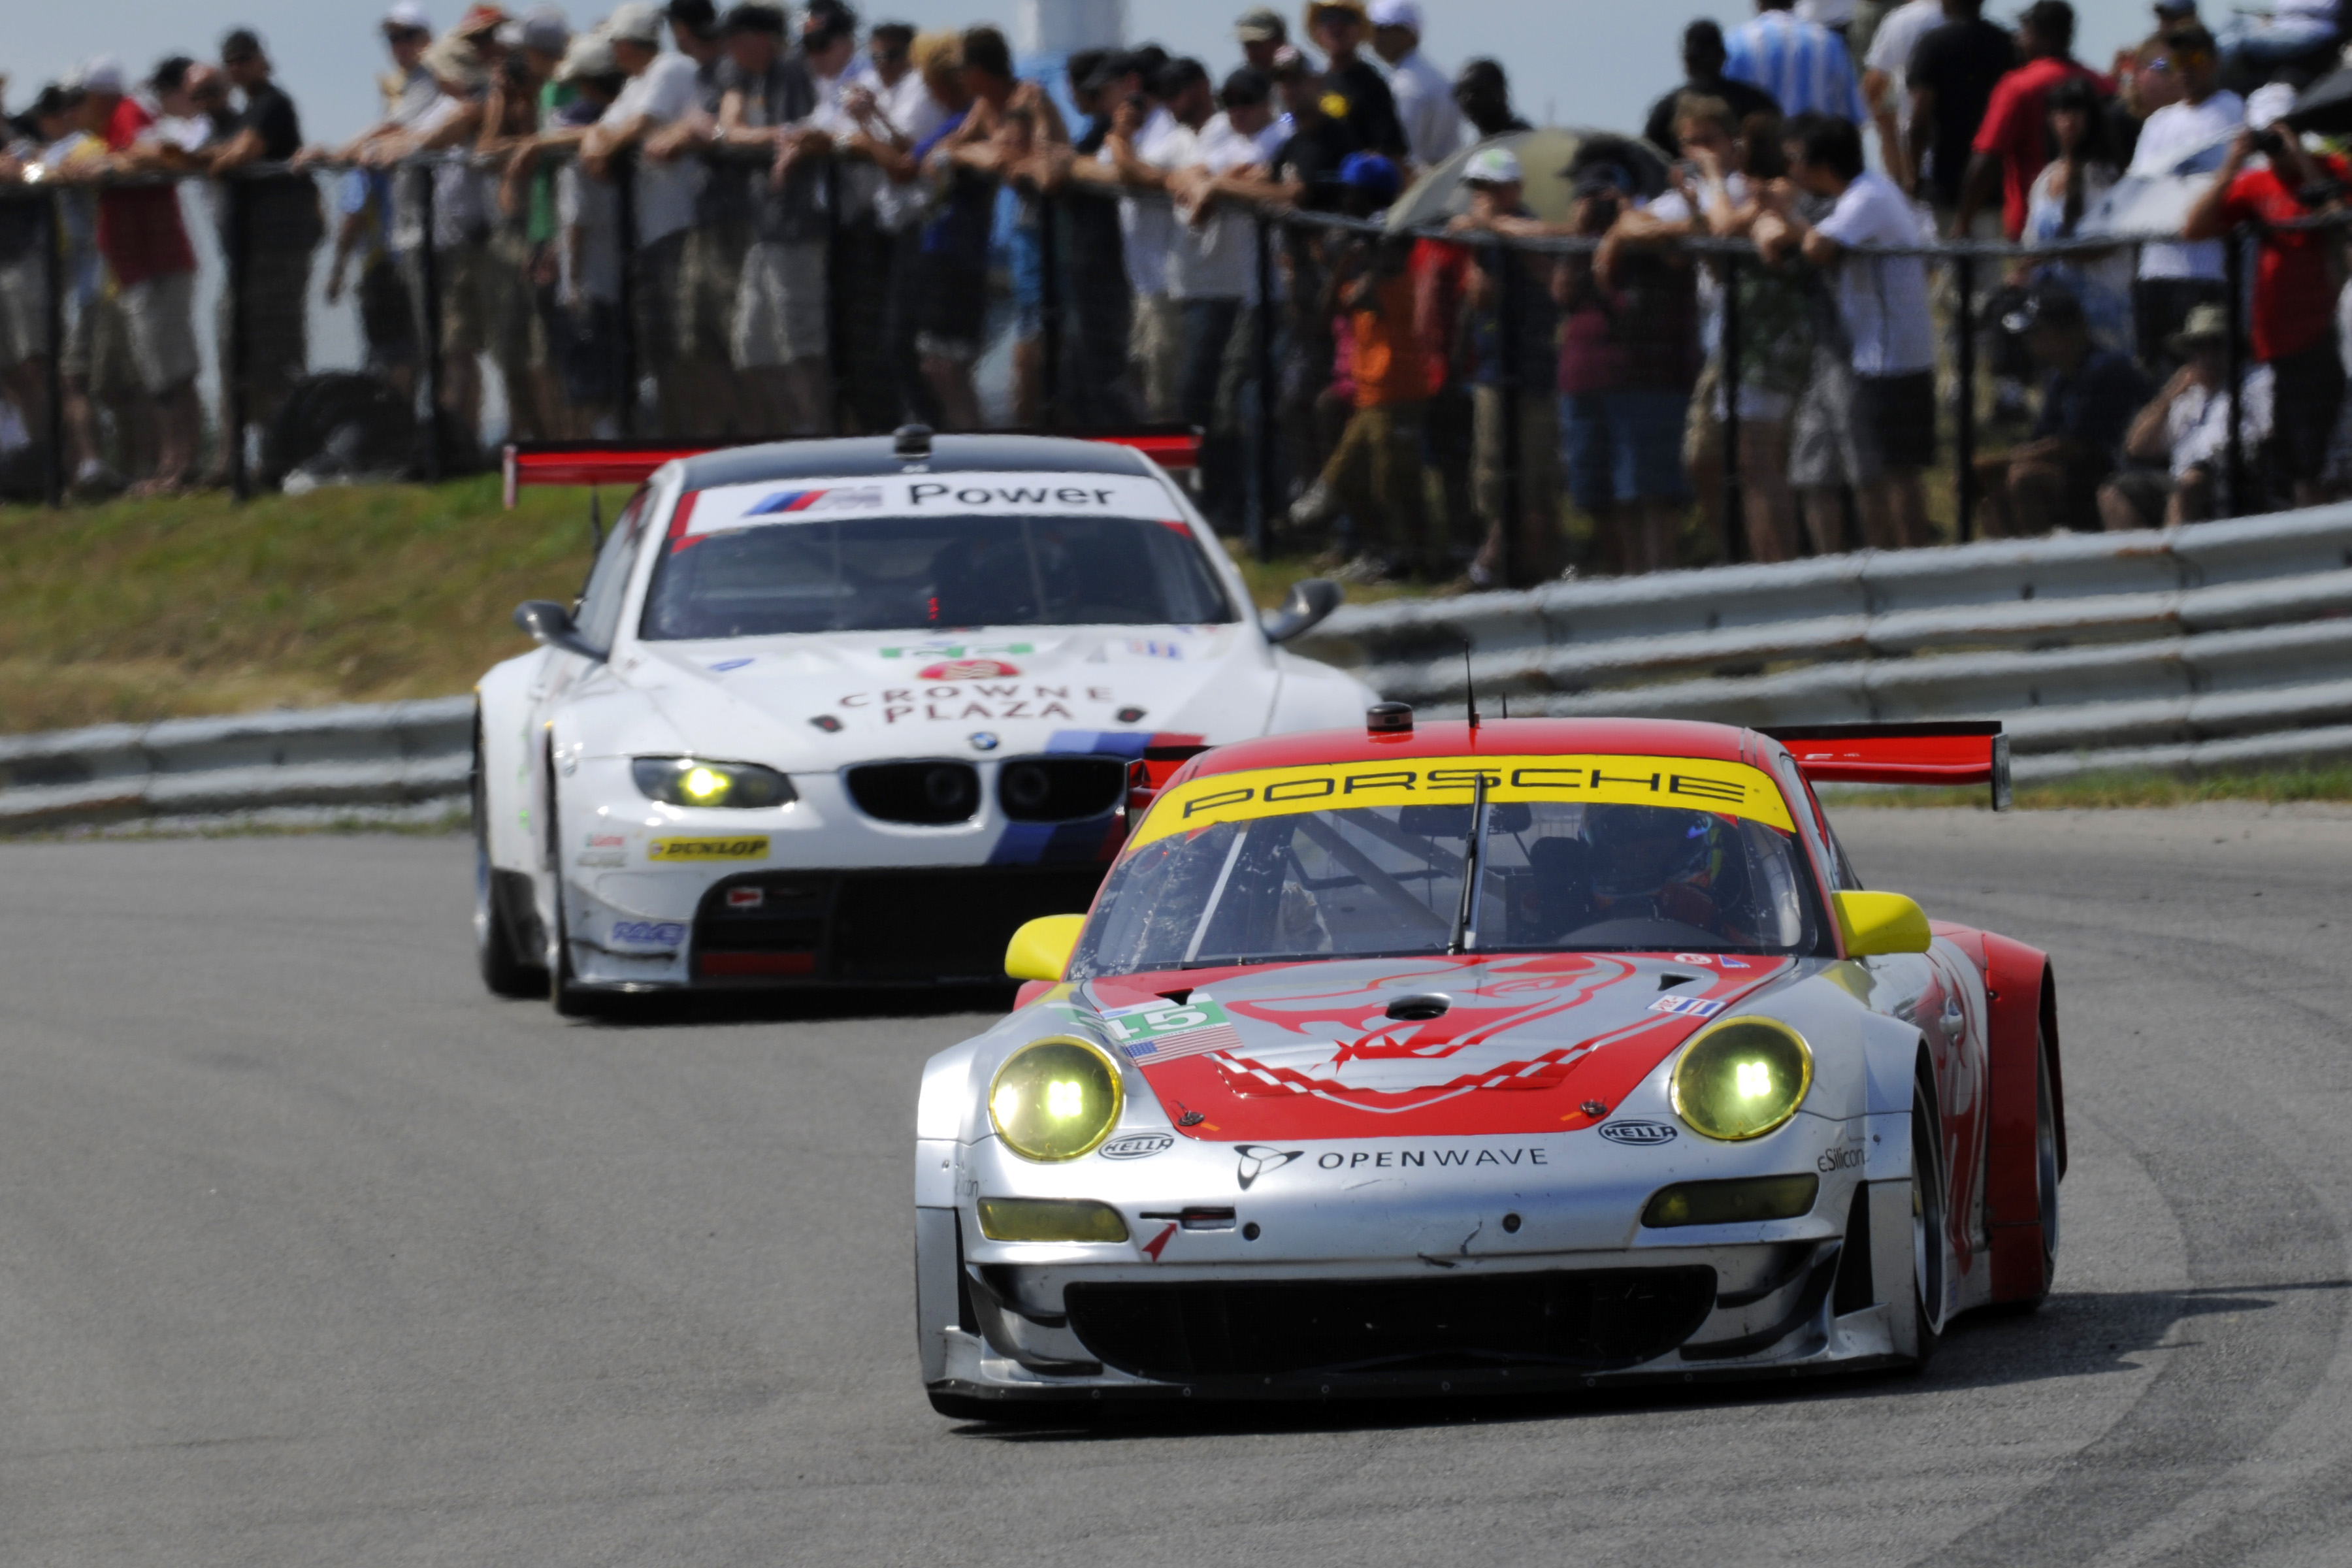 Disappointing race for Porsche – American Le Mans Series, rd 4 in ...